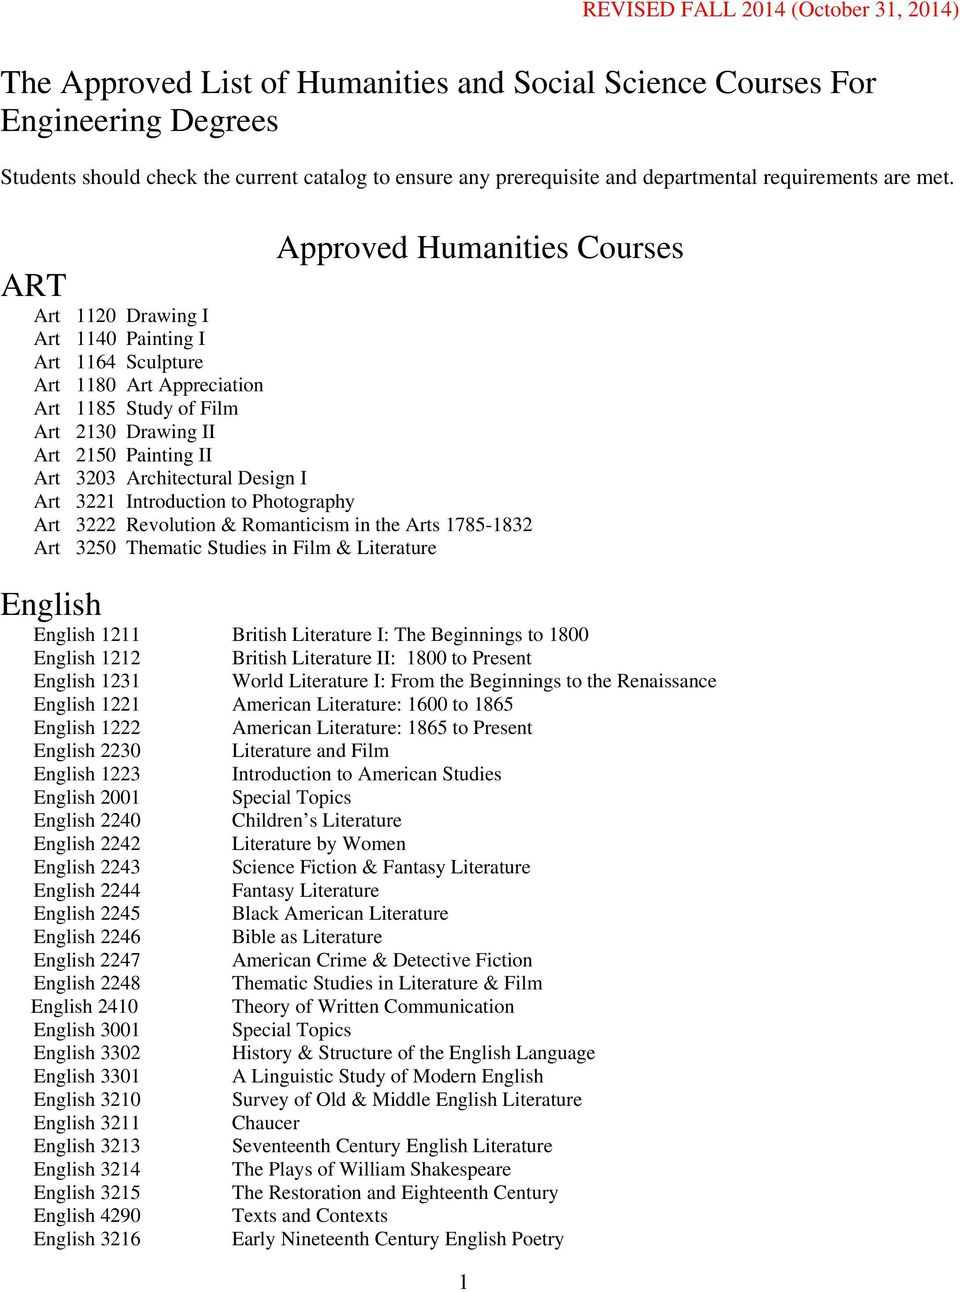 The Approved List of Humanities and Social Science Courses